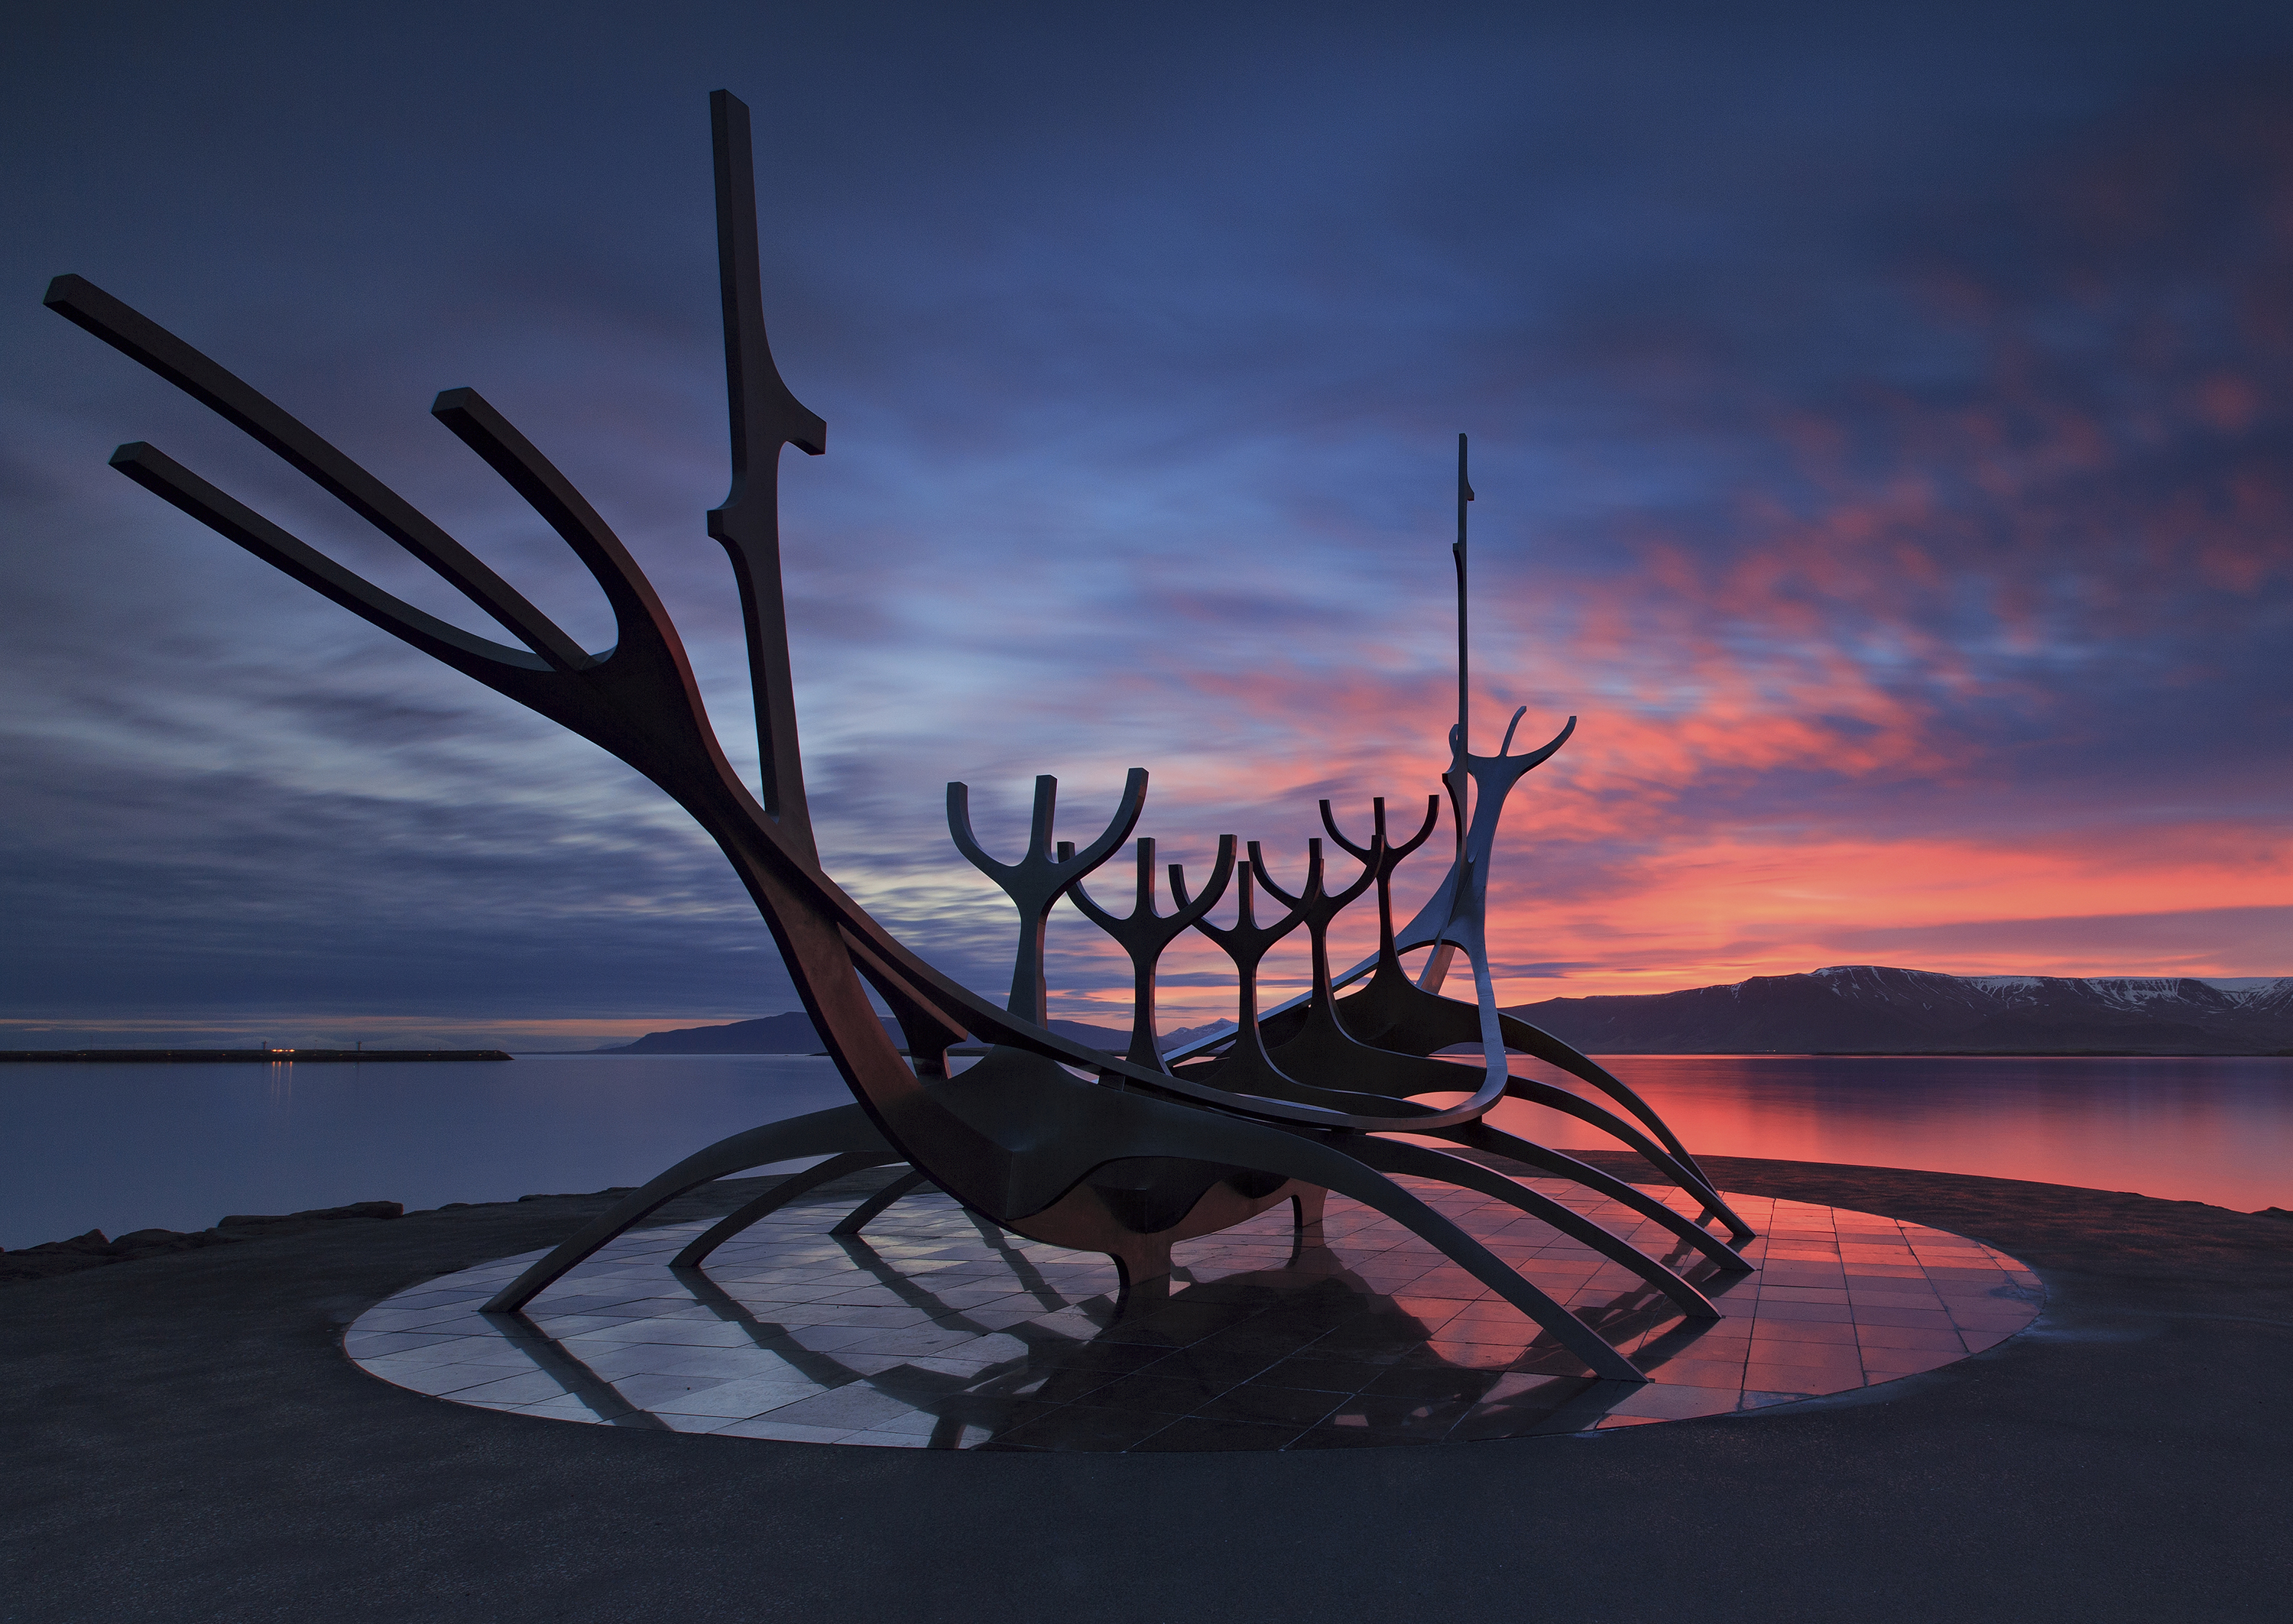 The Sun Voyager sculpture at sunset. This wonderful work of art can be found next to Harpa Concert Hall in downtown Reykjavík.